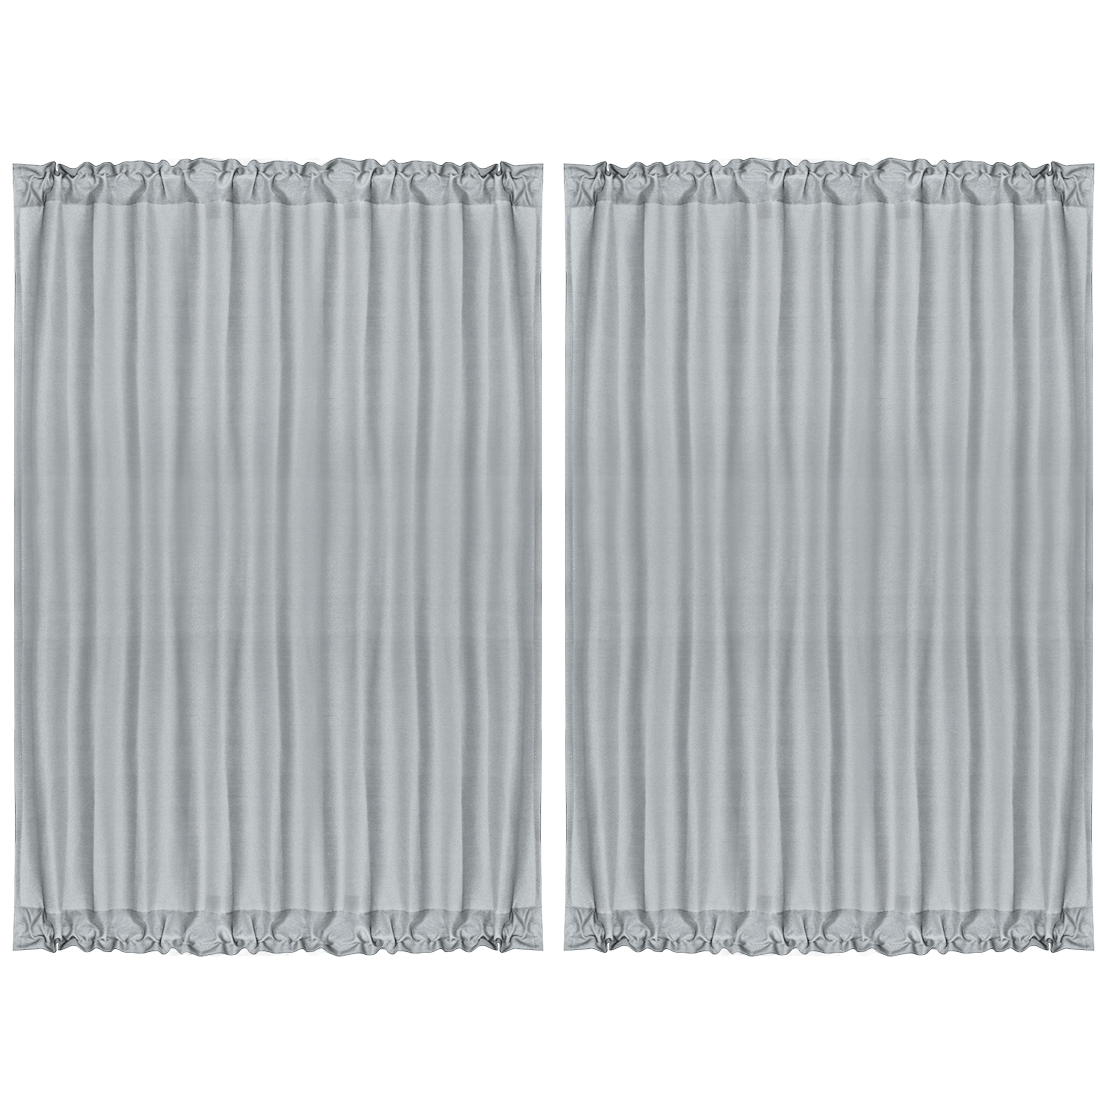 "2pcs Blackout Curtains Sliding Door Panel Darkening Drape Gray 54"" x 72"""